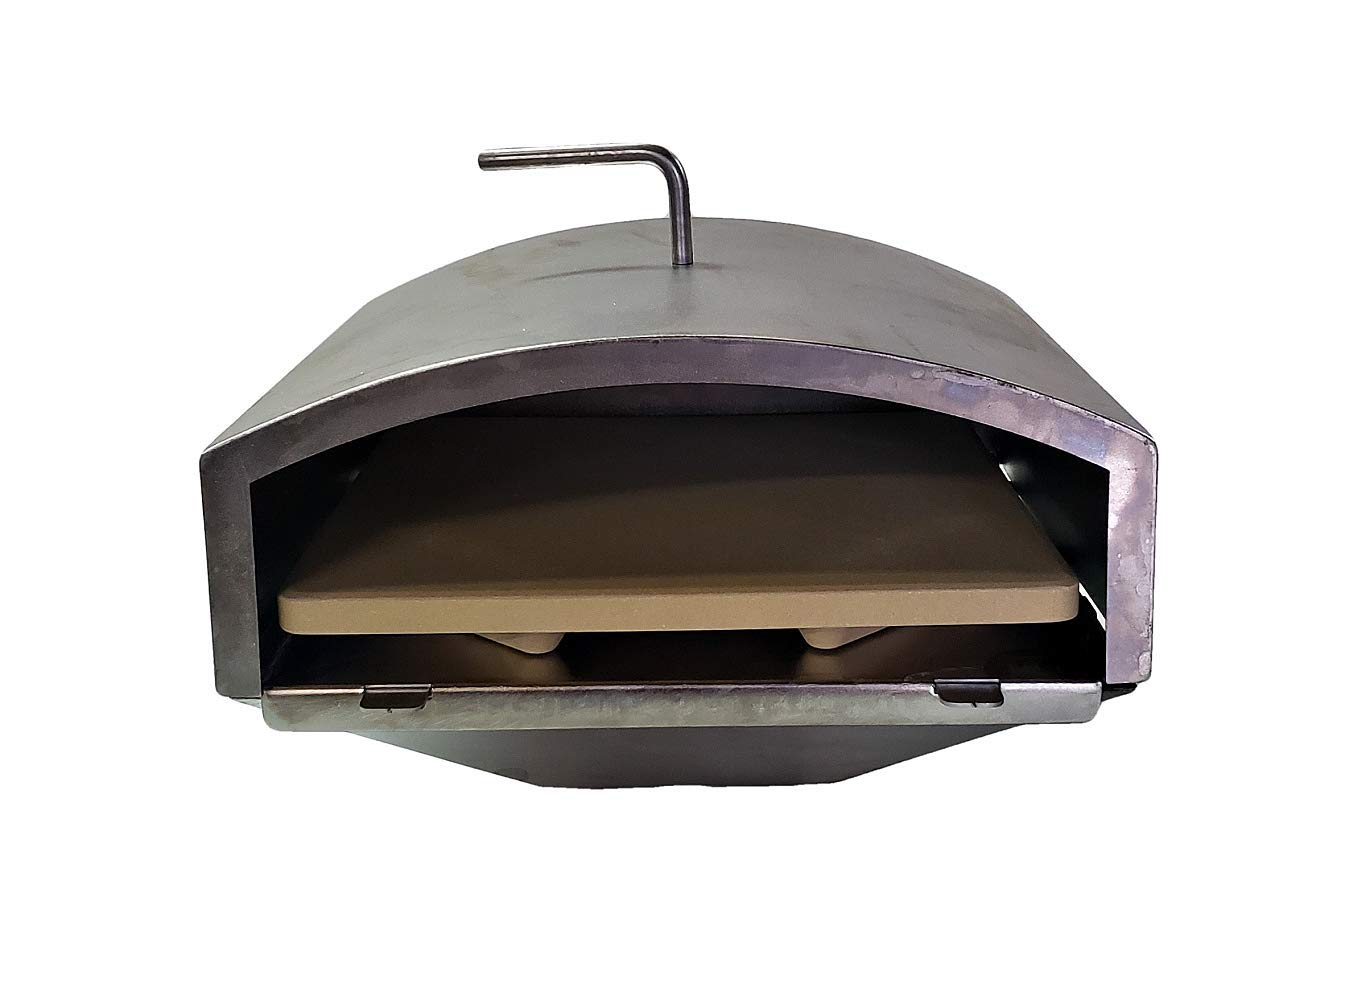 Green Mountain Grills Wood Fired Pizza Oven for Davy Crockett Grill GMG-4108 by Green Mountain Grills